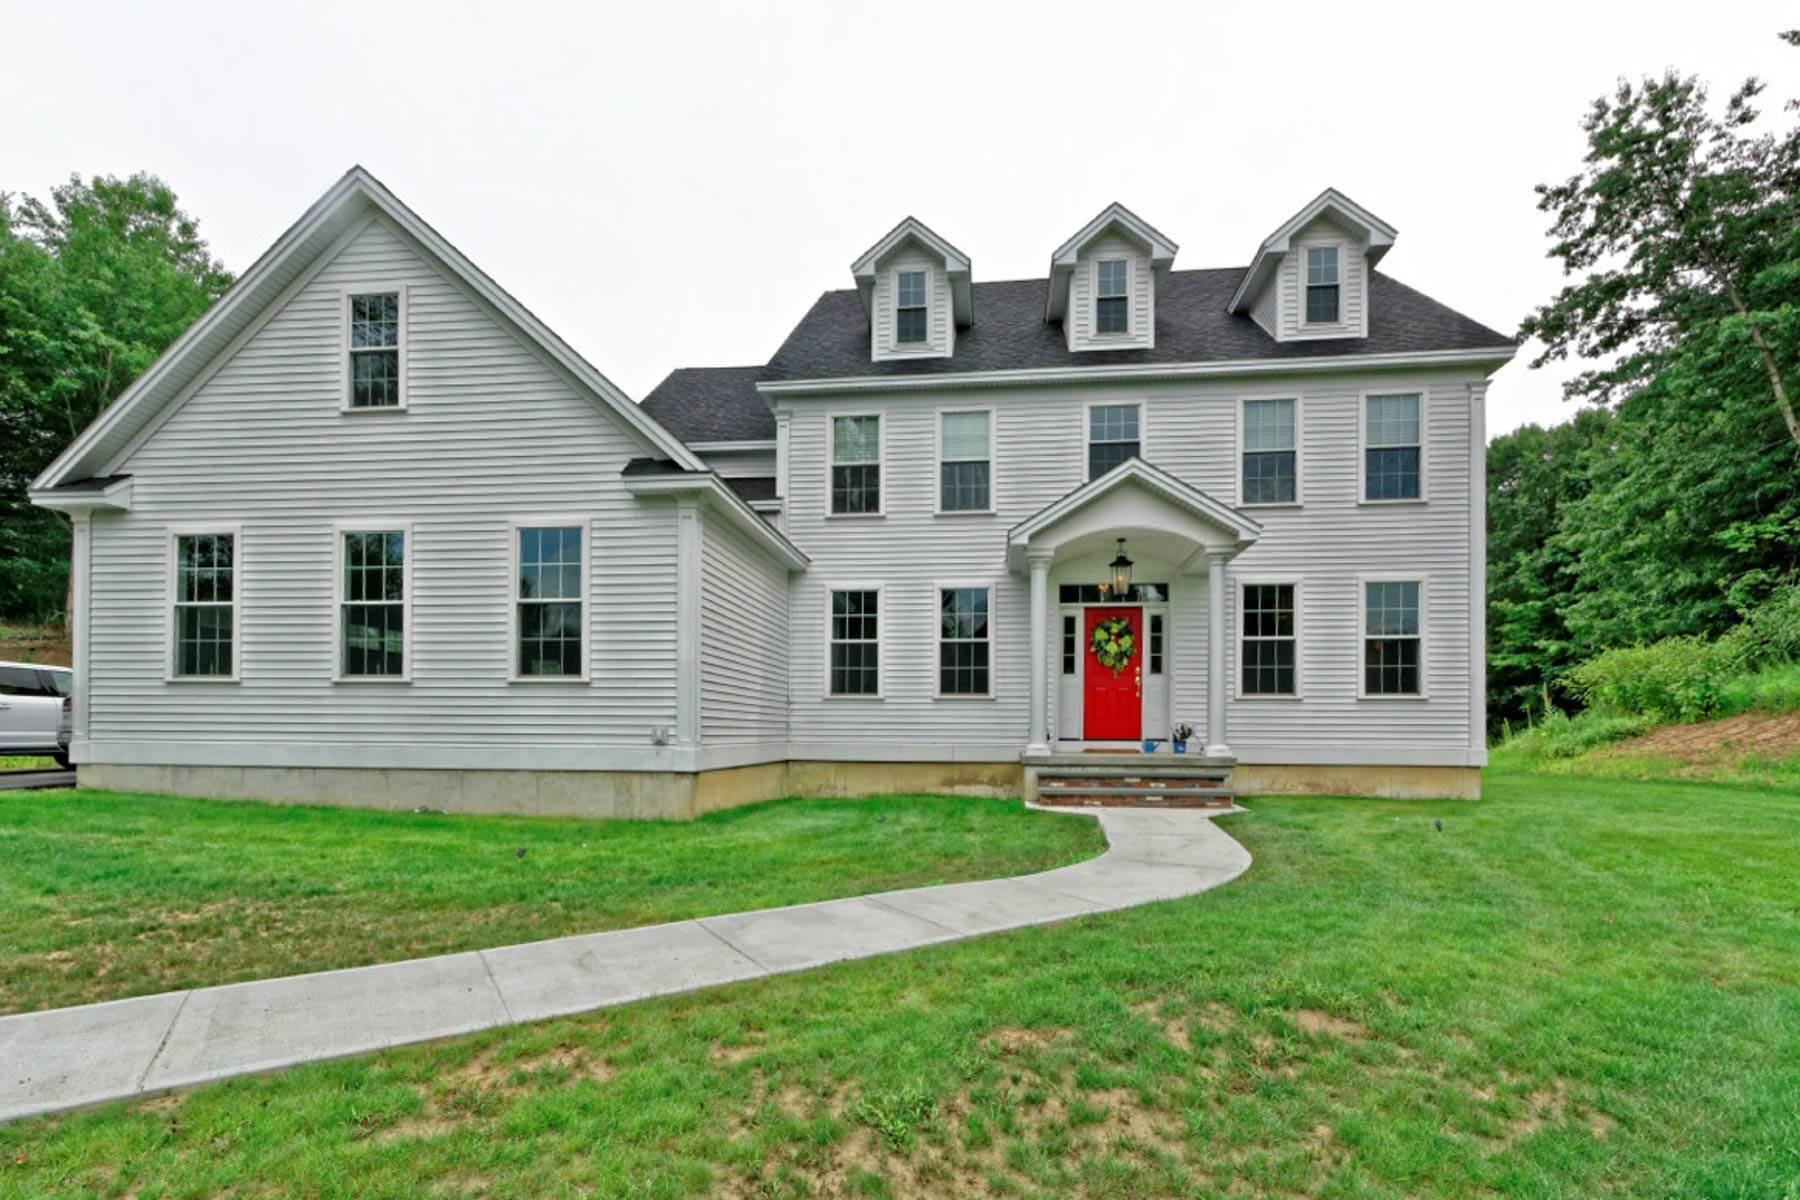 Single Family Homes для того Продажа на Build Your Dream Home in Schuyler Hills! 216 Patriot Hill Dr, Lot 12 Saratoga Springs, Нью-Йорк 12866 Соединенные Штаты